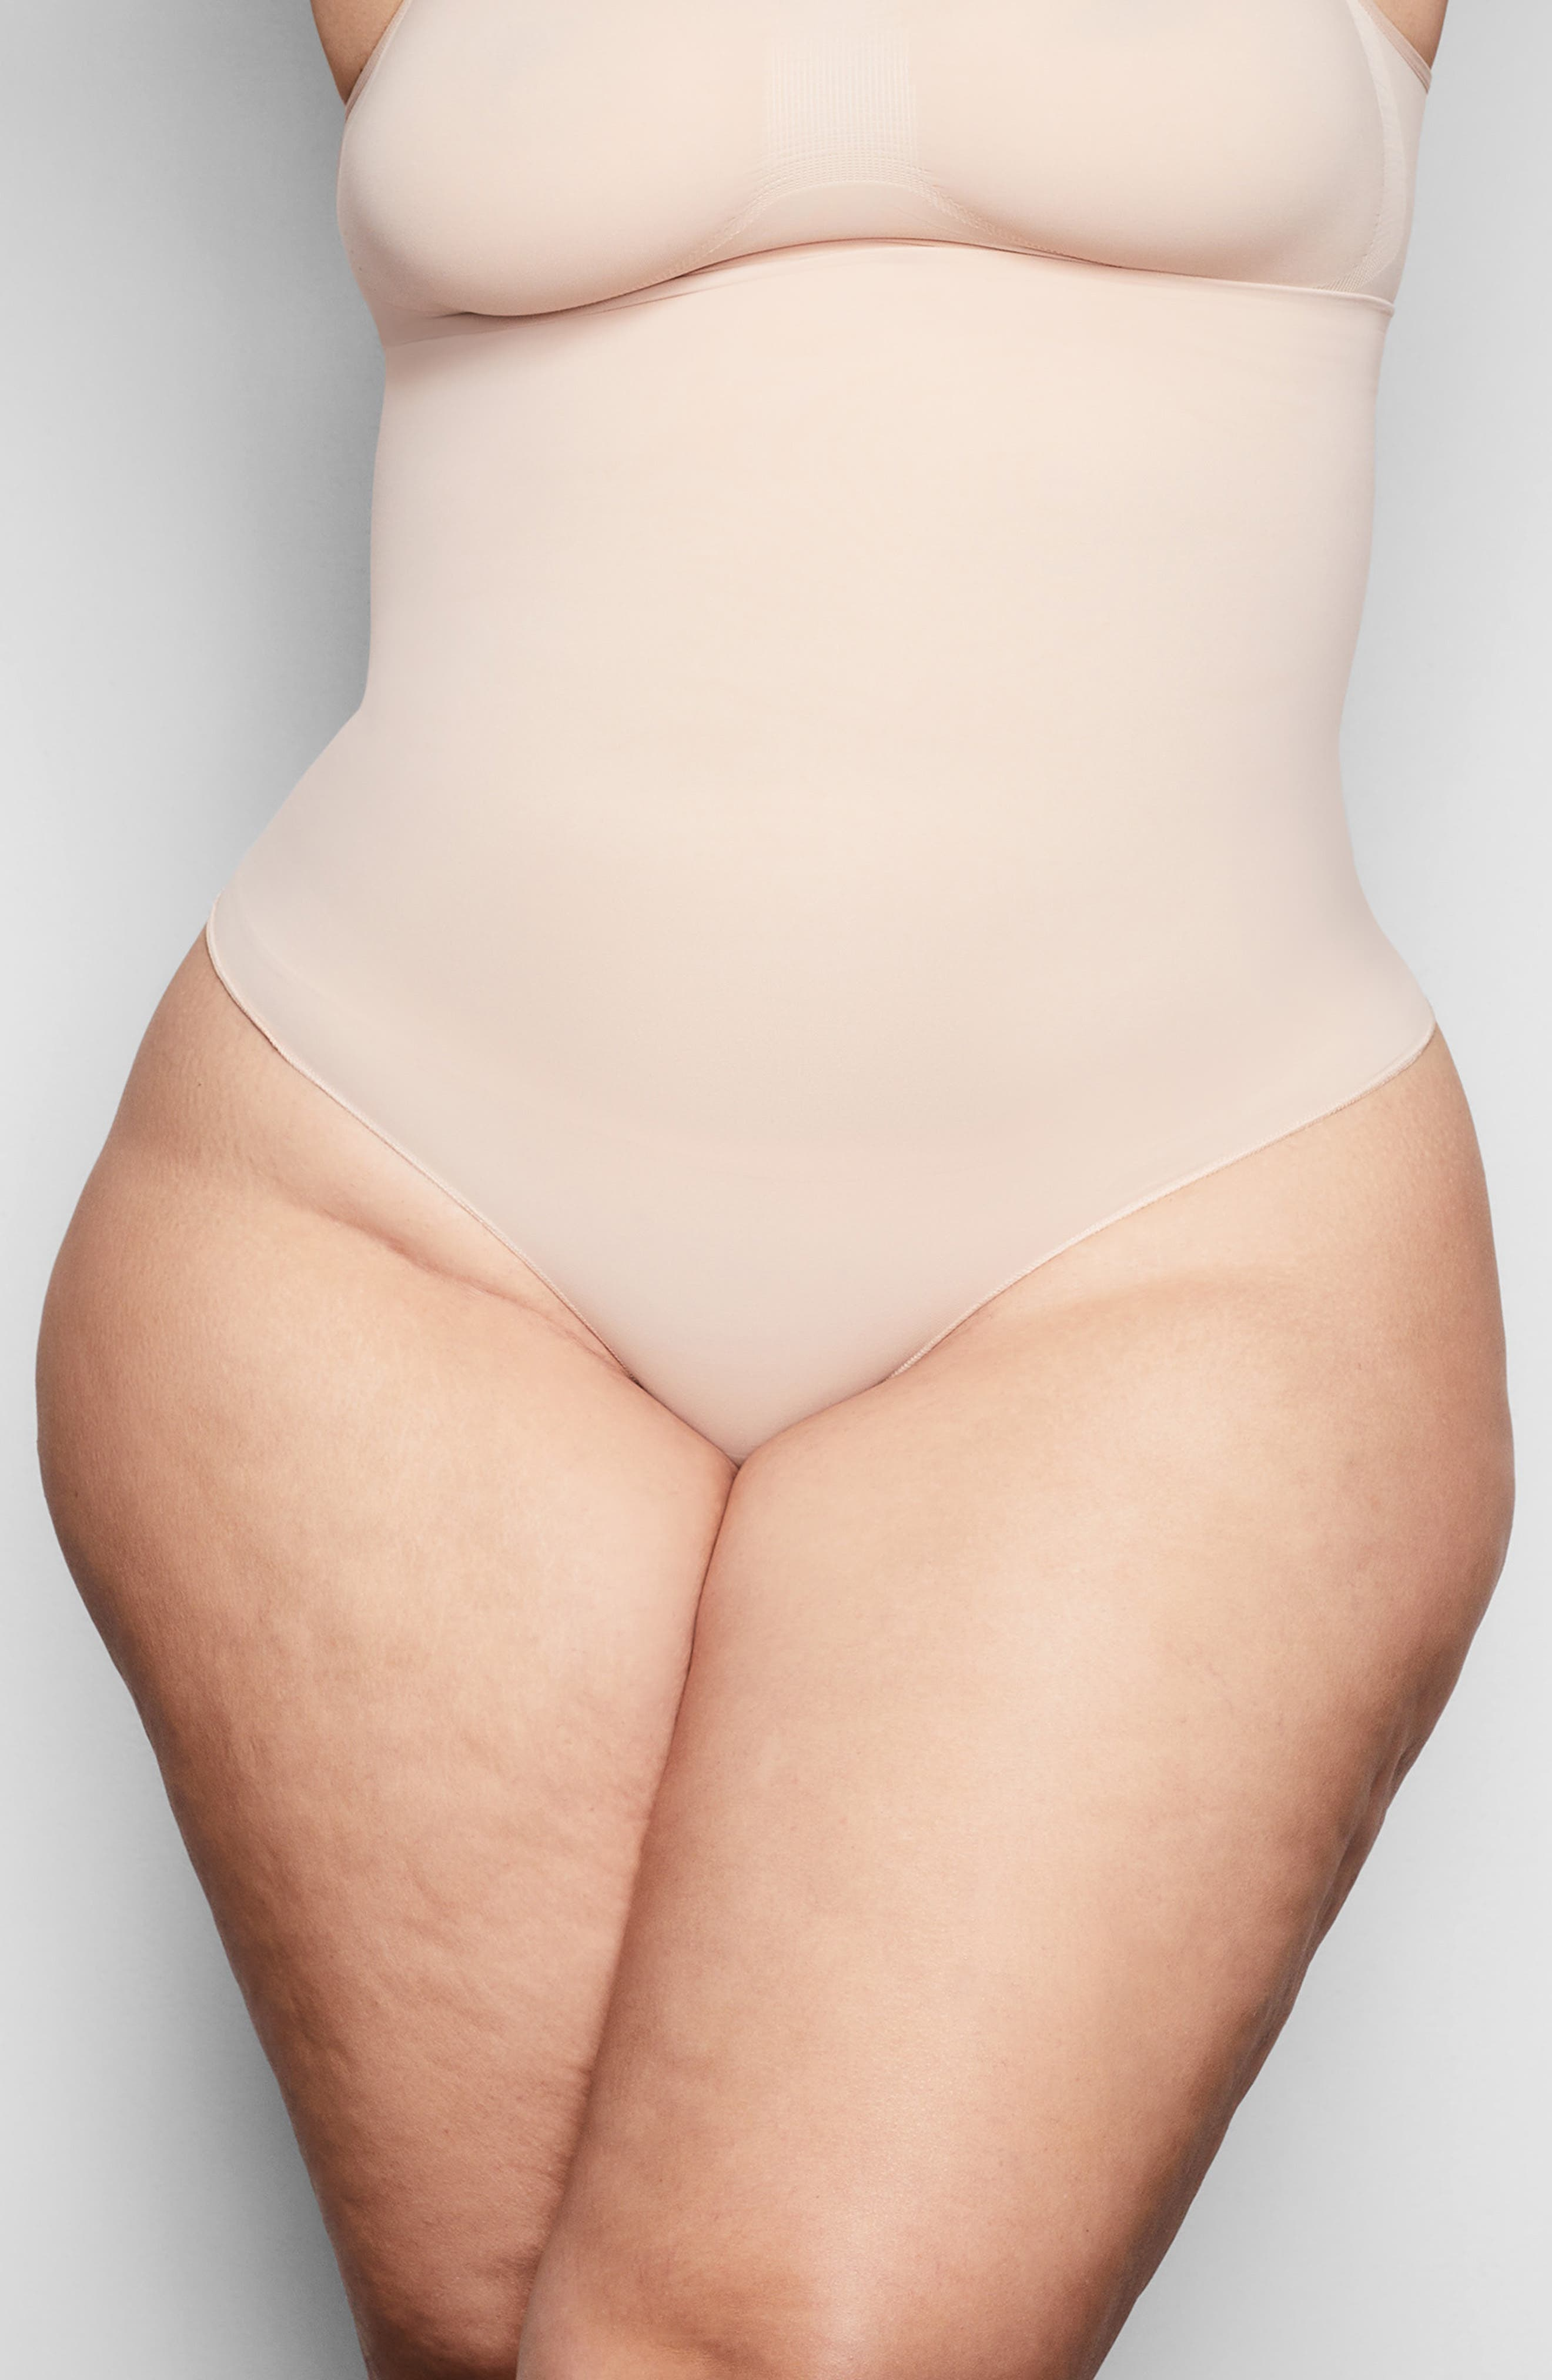 From Kim Kardashian West\\\'s SKIMS, this mid-rise thong that smoothes and tightly contours your core reflects the brand\\\'s passion for shapewear for every body. This everyday staple piece-with a supportive yet silky construction-enhances your body\\\'s natural shape and comes in nine different shades to complement your skintone. Style Name: Skims Core Control Thong (Regular & Plus Size). Style Number: 6016432. Available in stores.